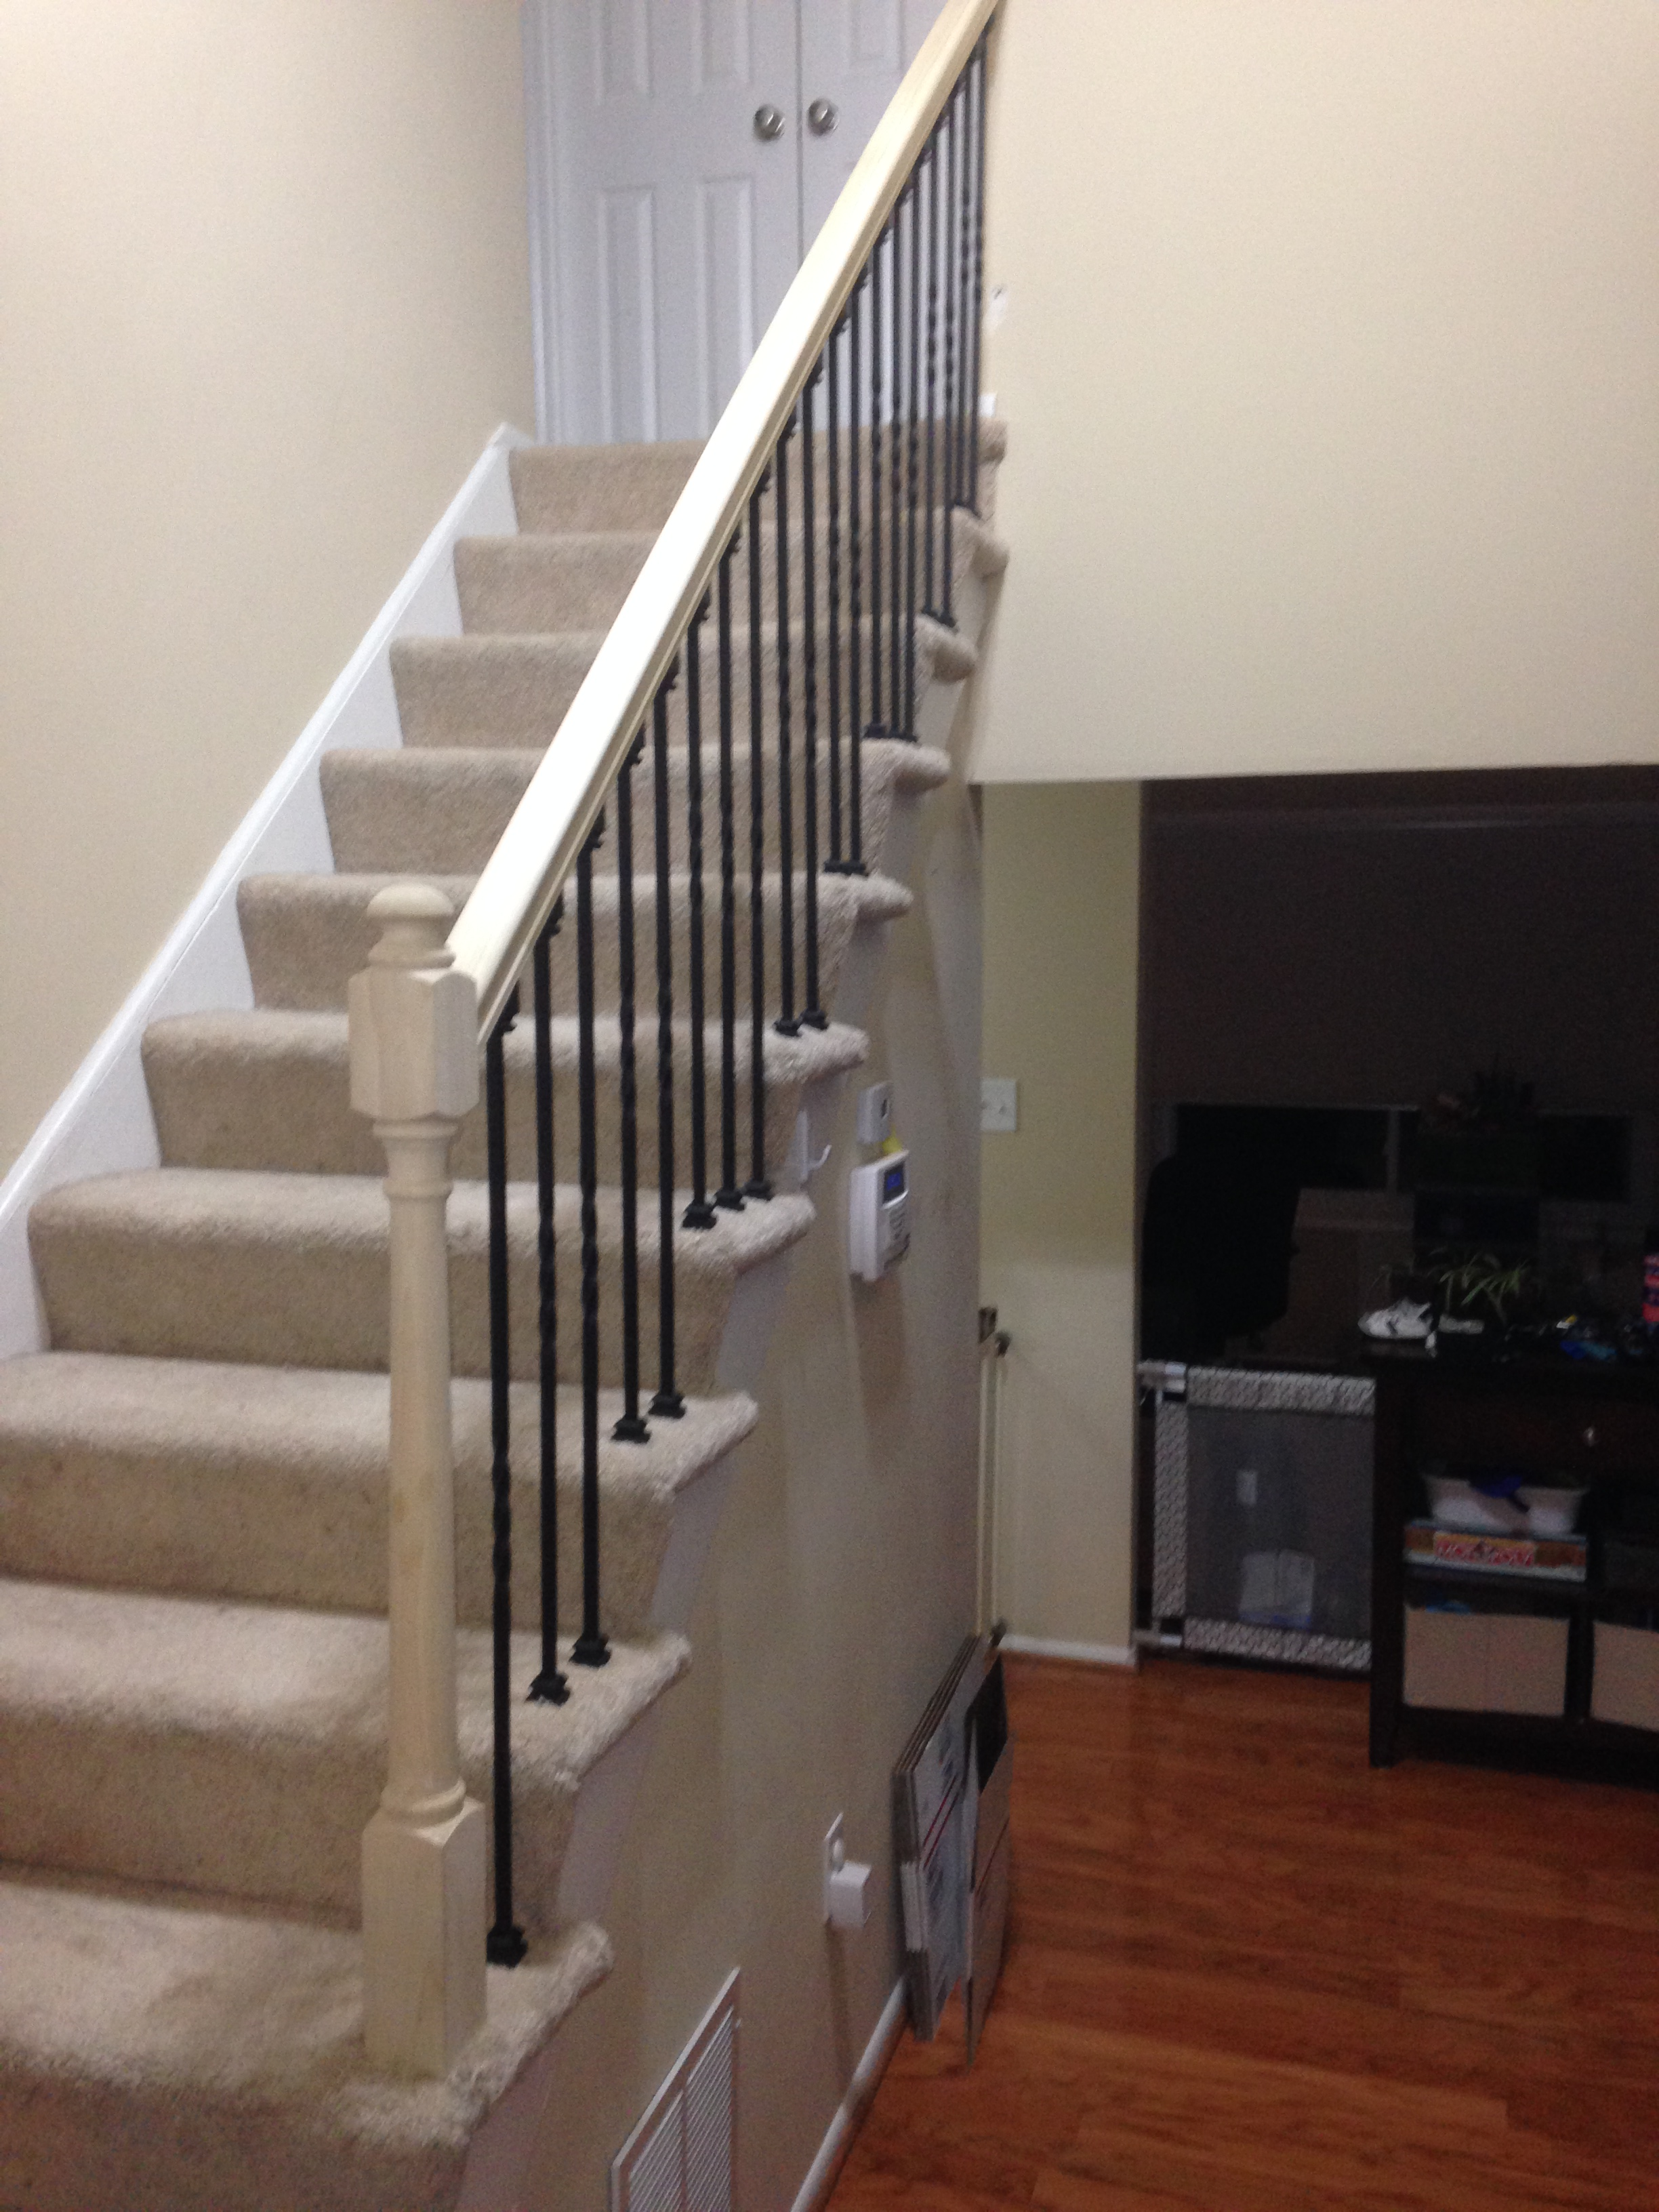 Stair railing after renovation